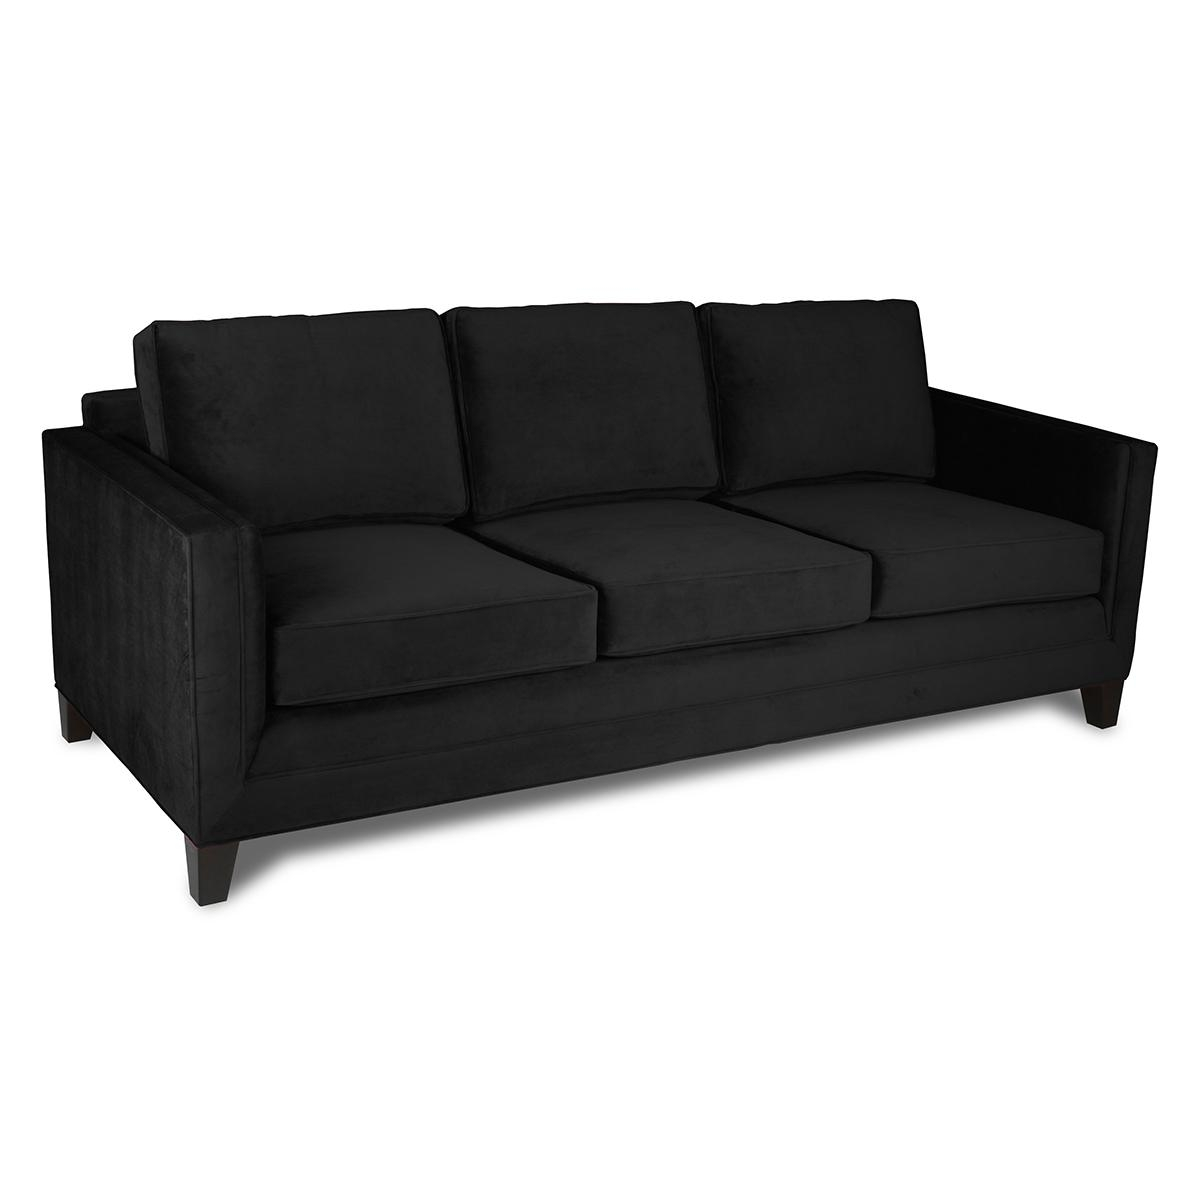 Belfast Velvet Sofa Intended For Black Velvet Sofas (Image 1 of 20)